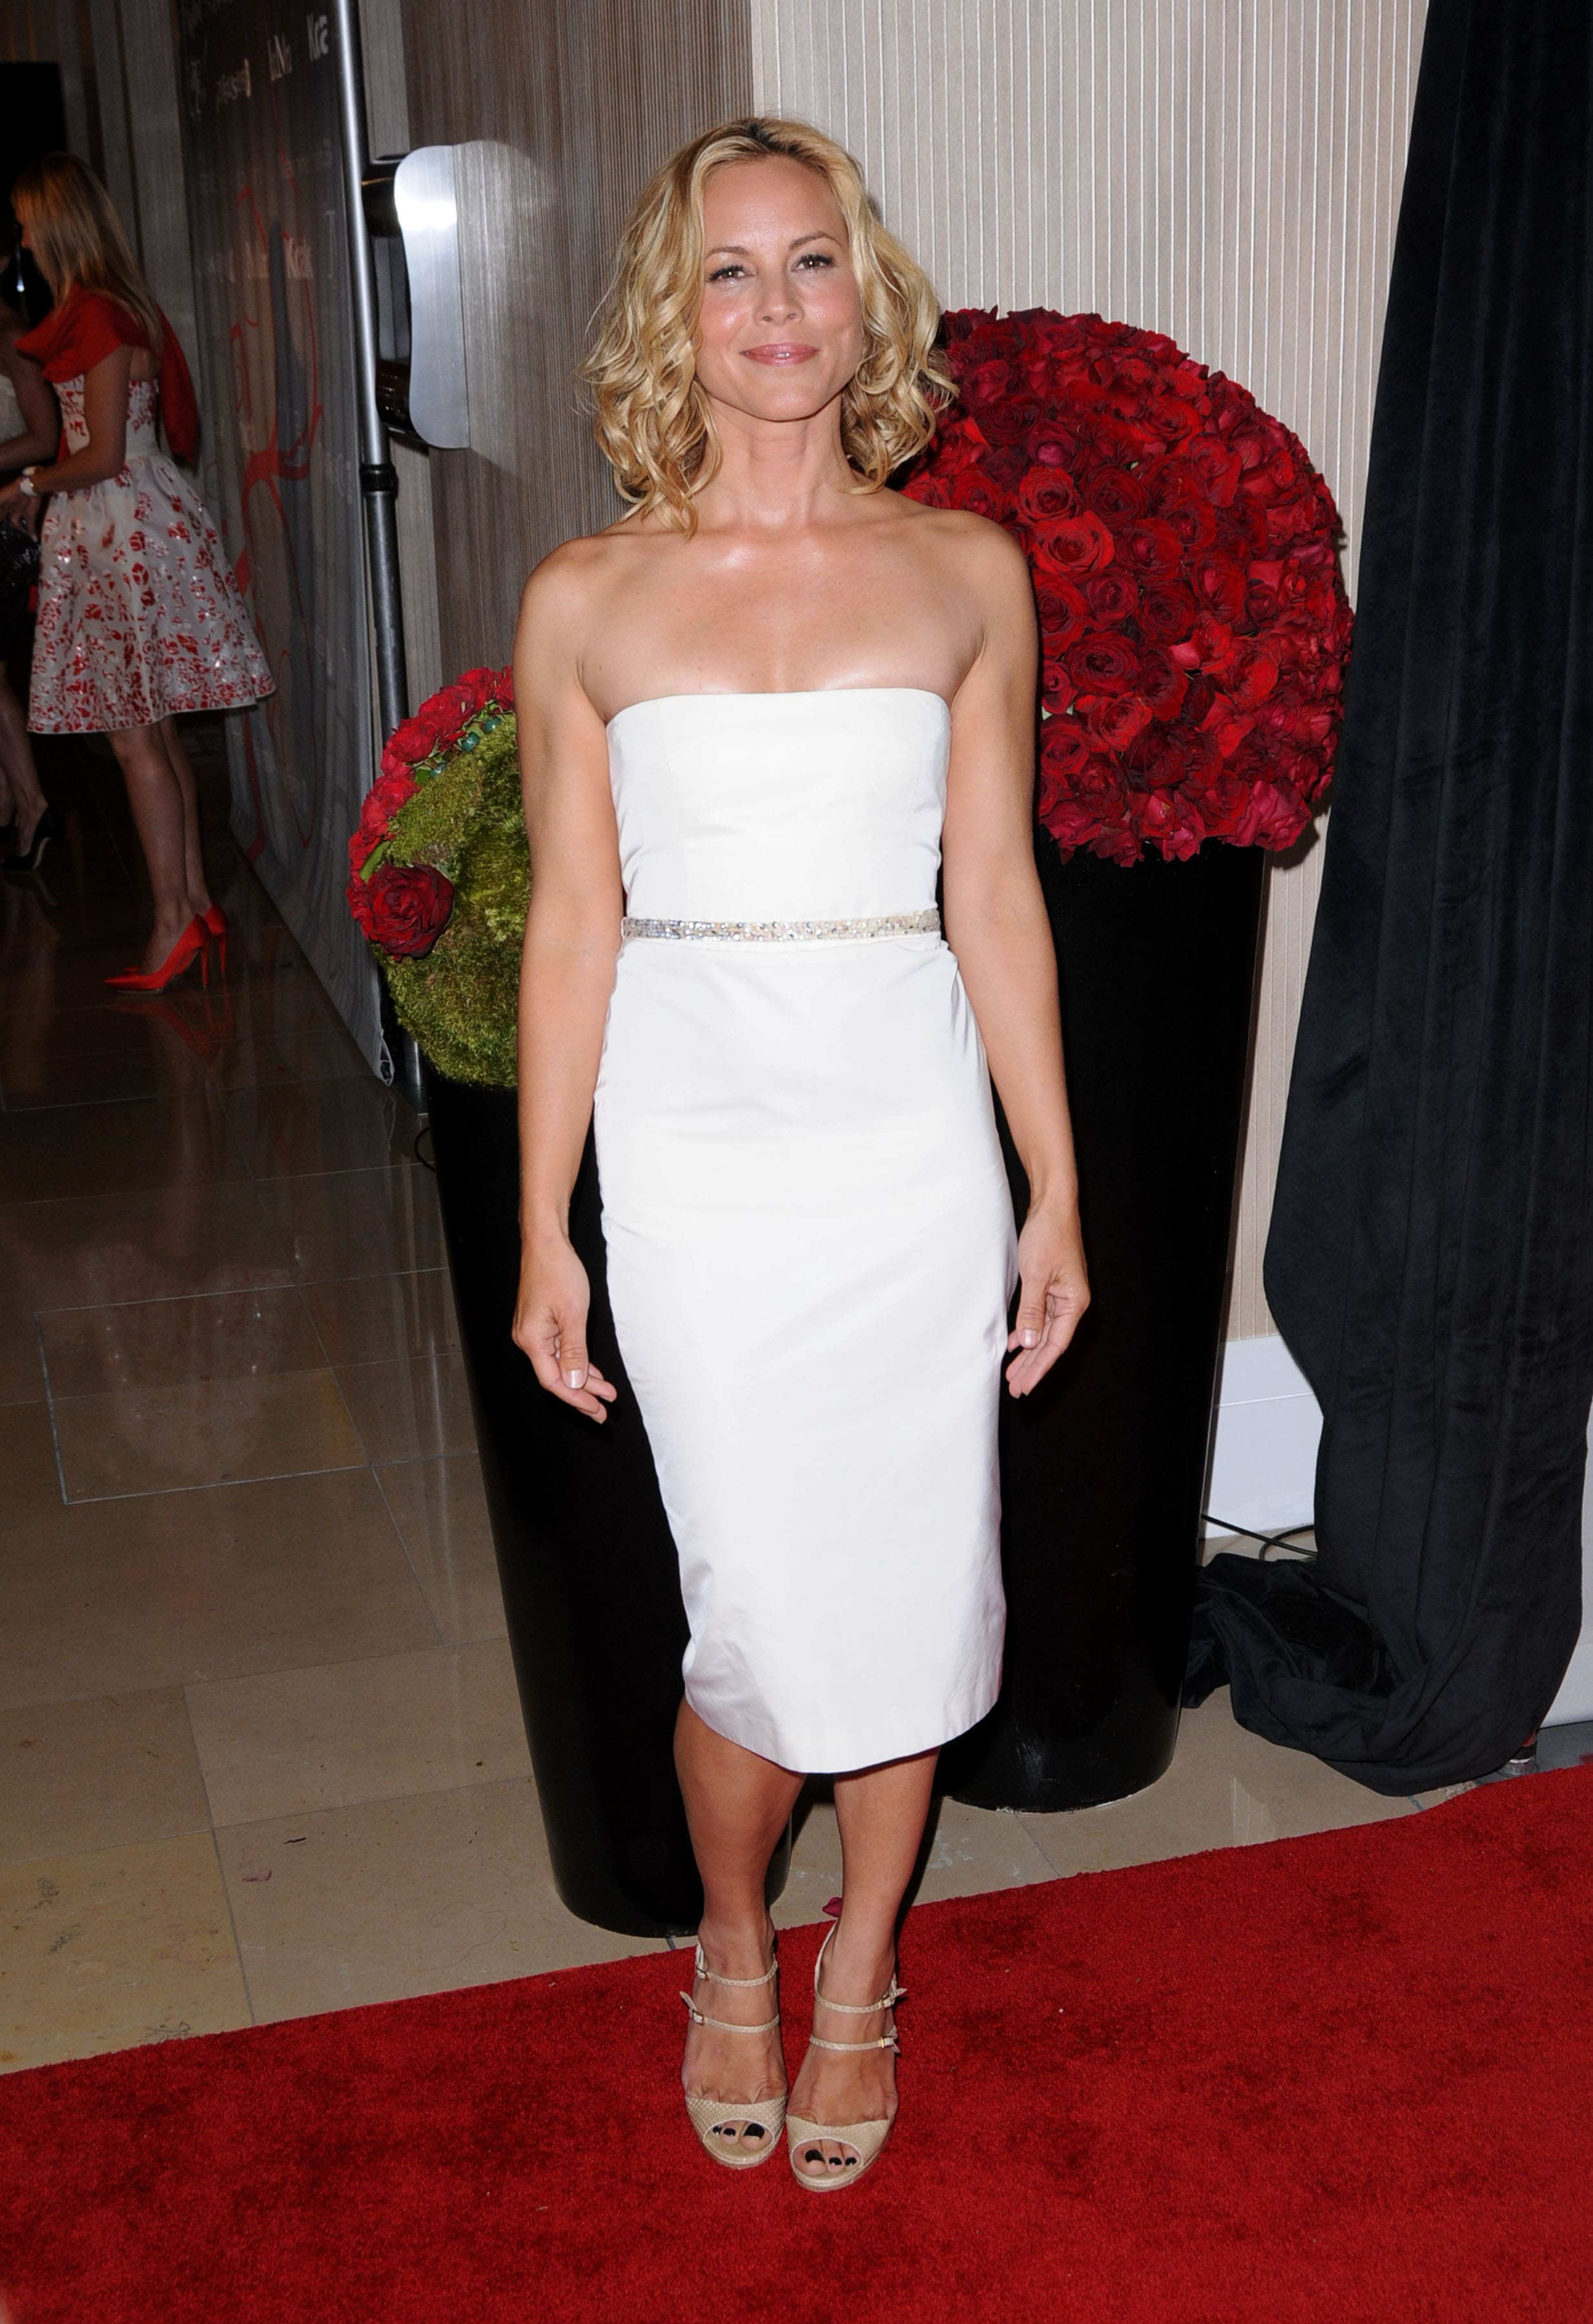 49 Hot Pictures Of Maria Bello Which Will Make You Sweat